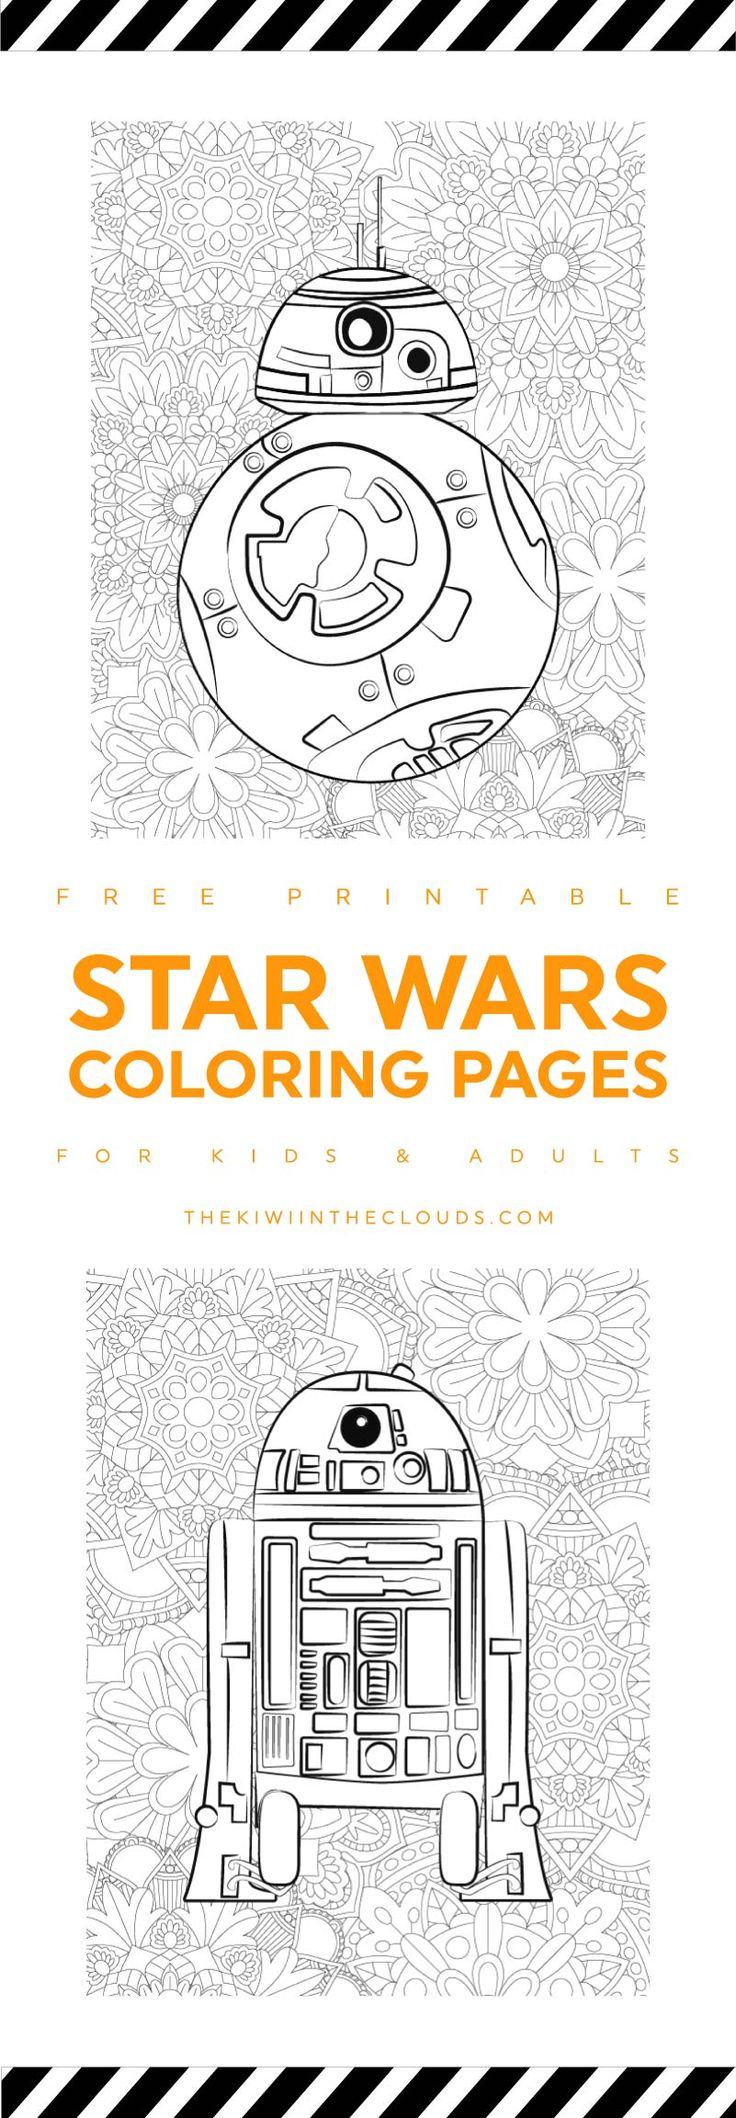 Star Wars Coloring Pages Pdf : Images about free printables on pinterest